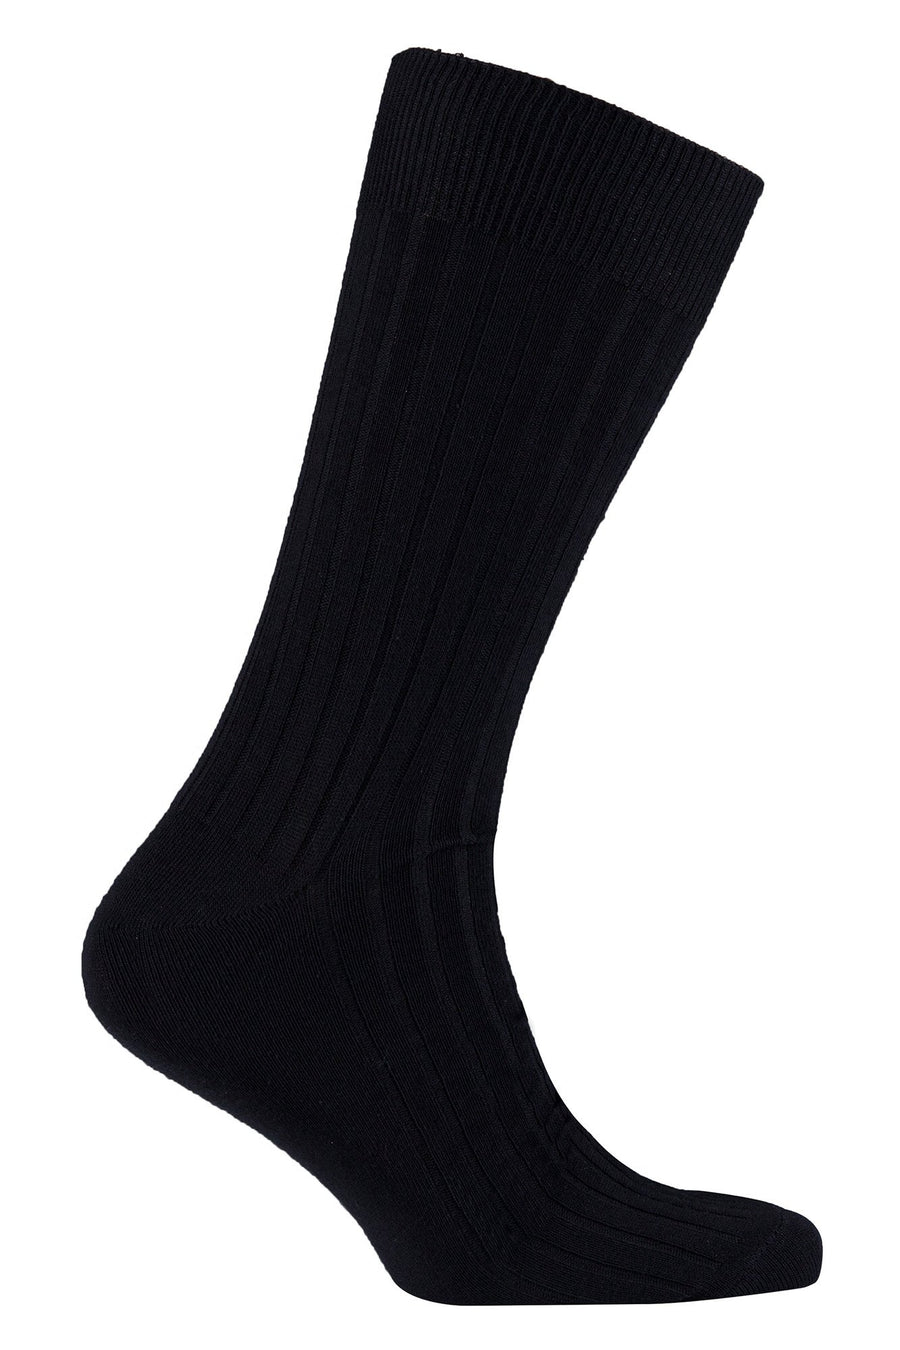 Men's 5-Pair Classic Design Socks-3132